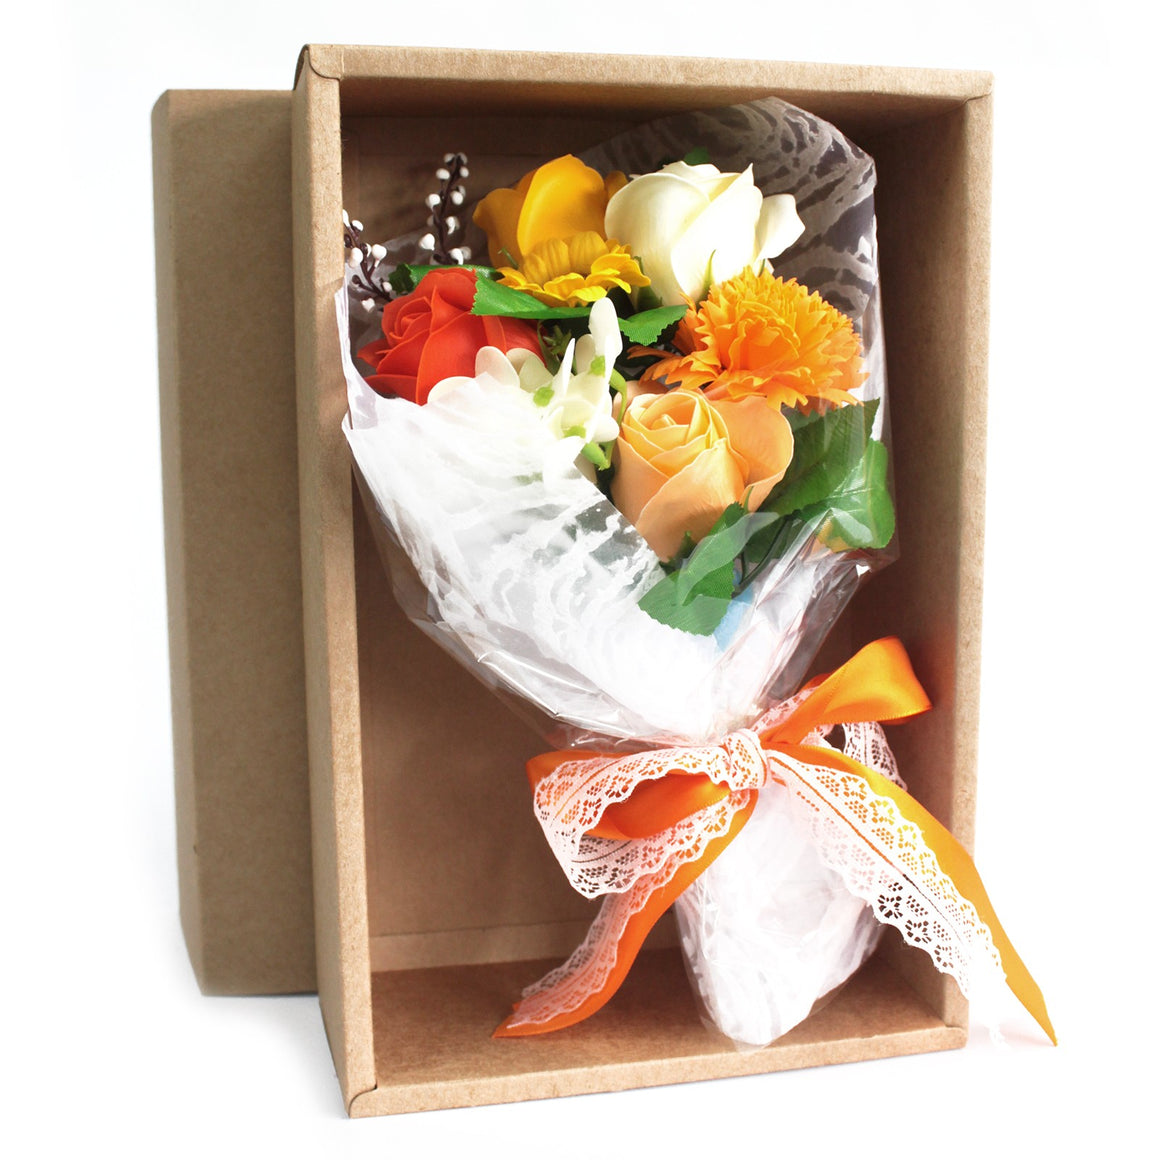 Boxed Hand Soap Flower Bouquet